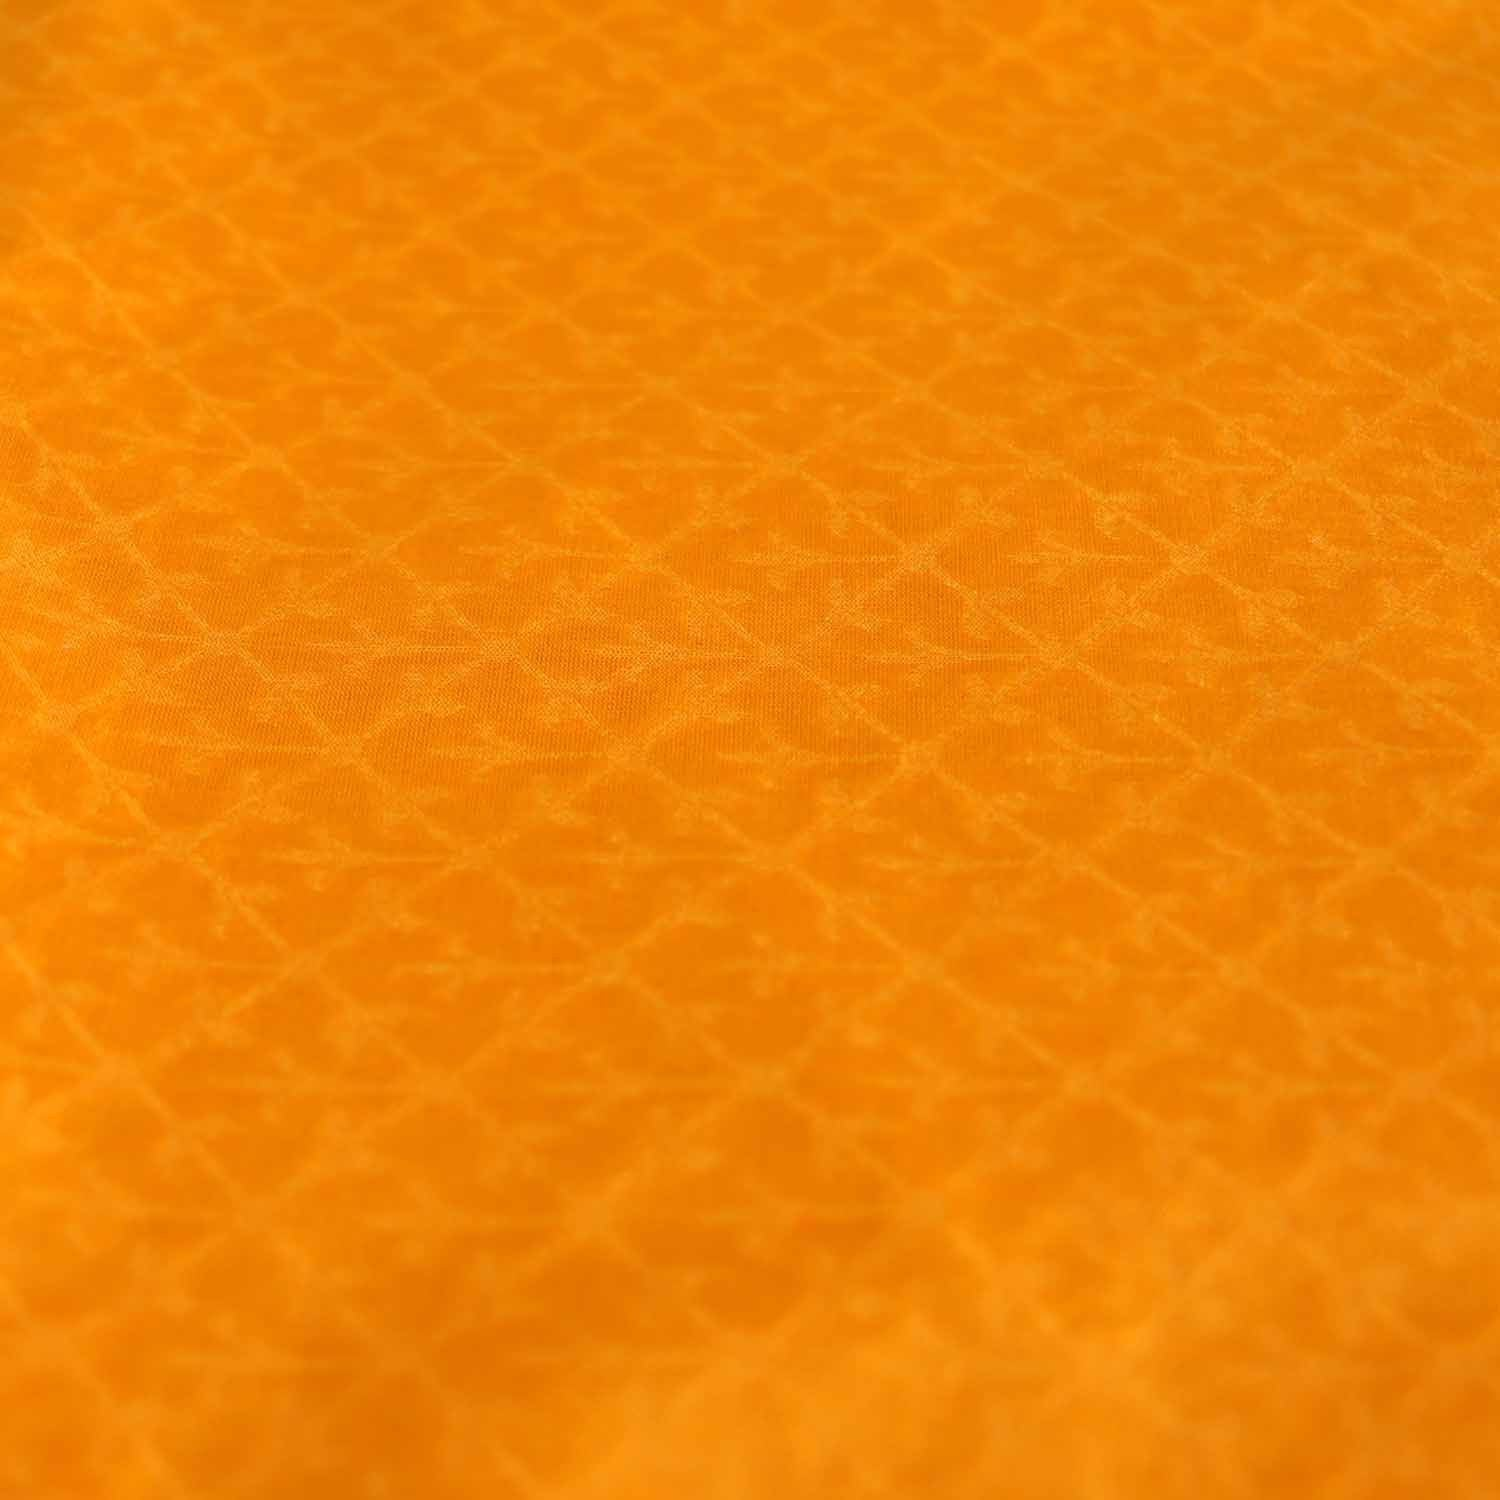 Yellow-Indian Pink Pure Katan Silk Banarasi Handloom Saree - Tilfi - 4